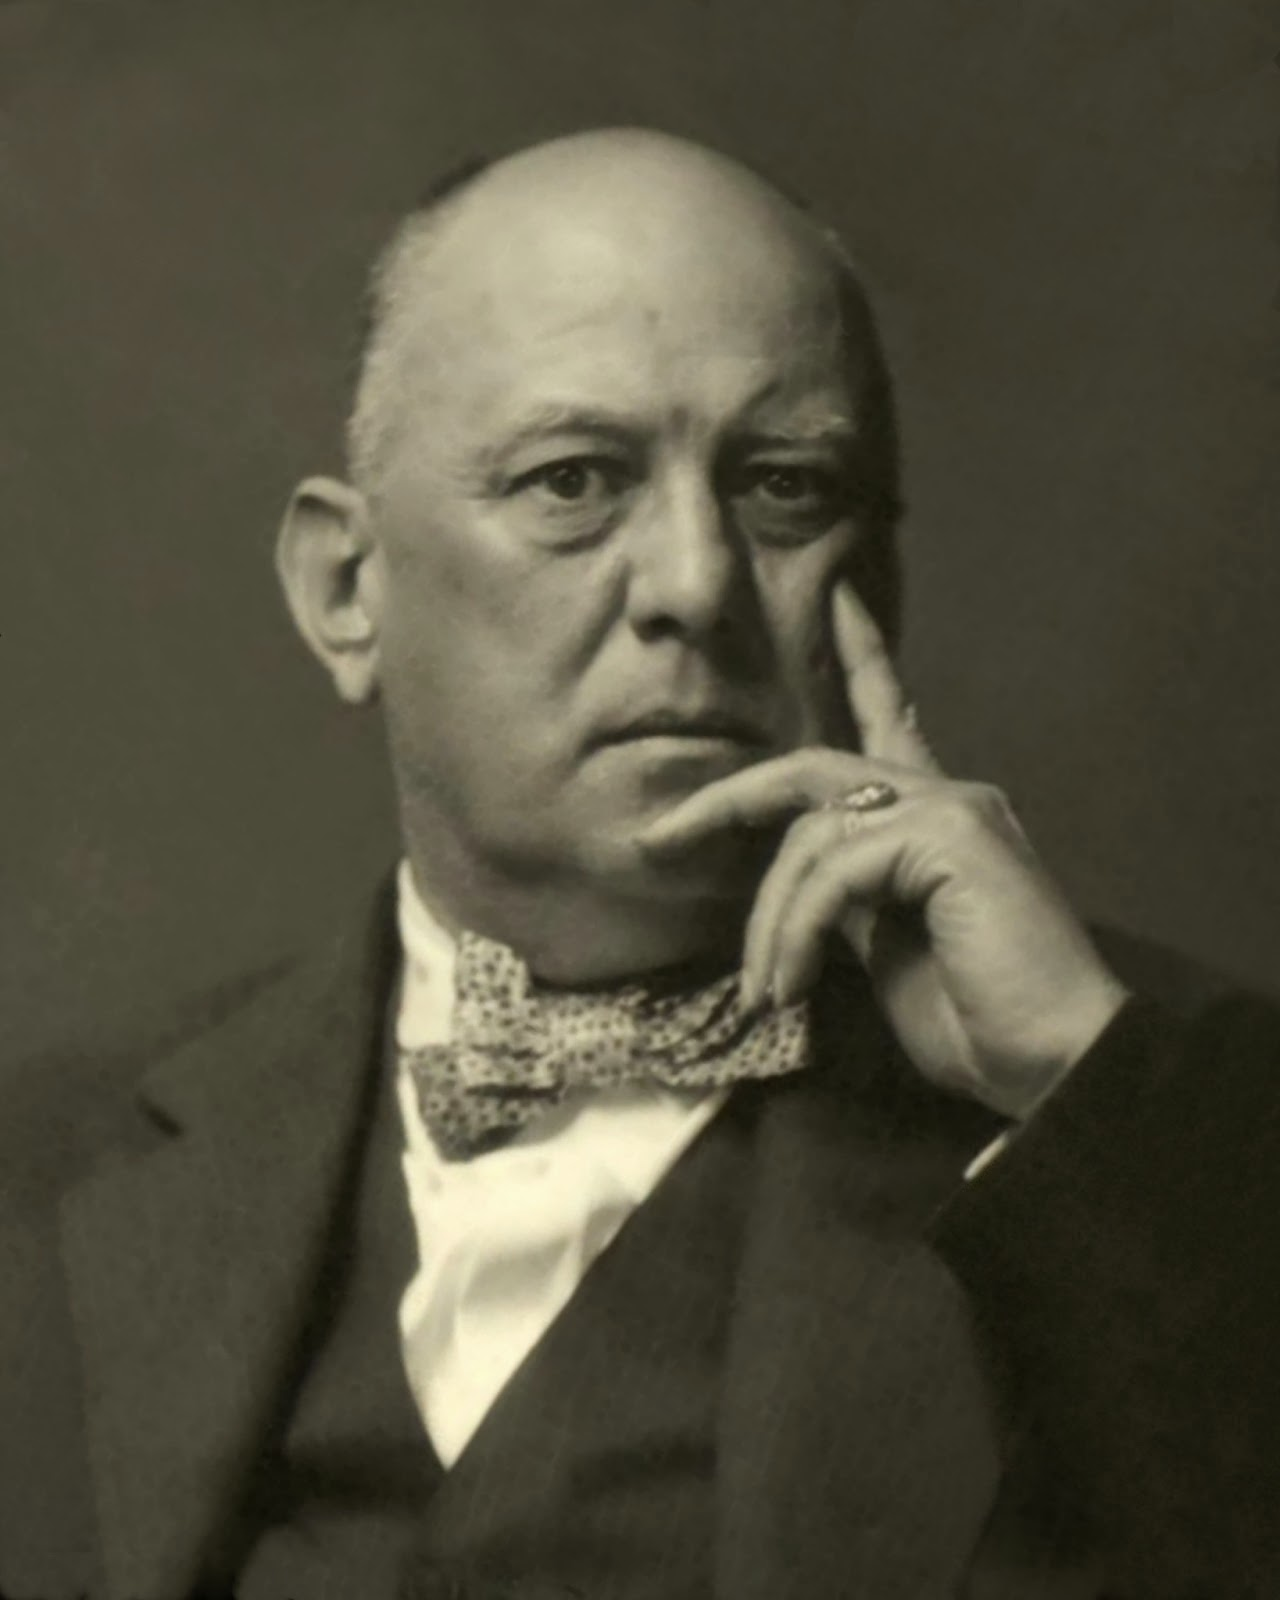 Aleister Crowley Tarot: The Kind Of Face You Hate: The Kind Of Face You Slash